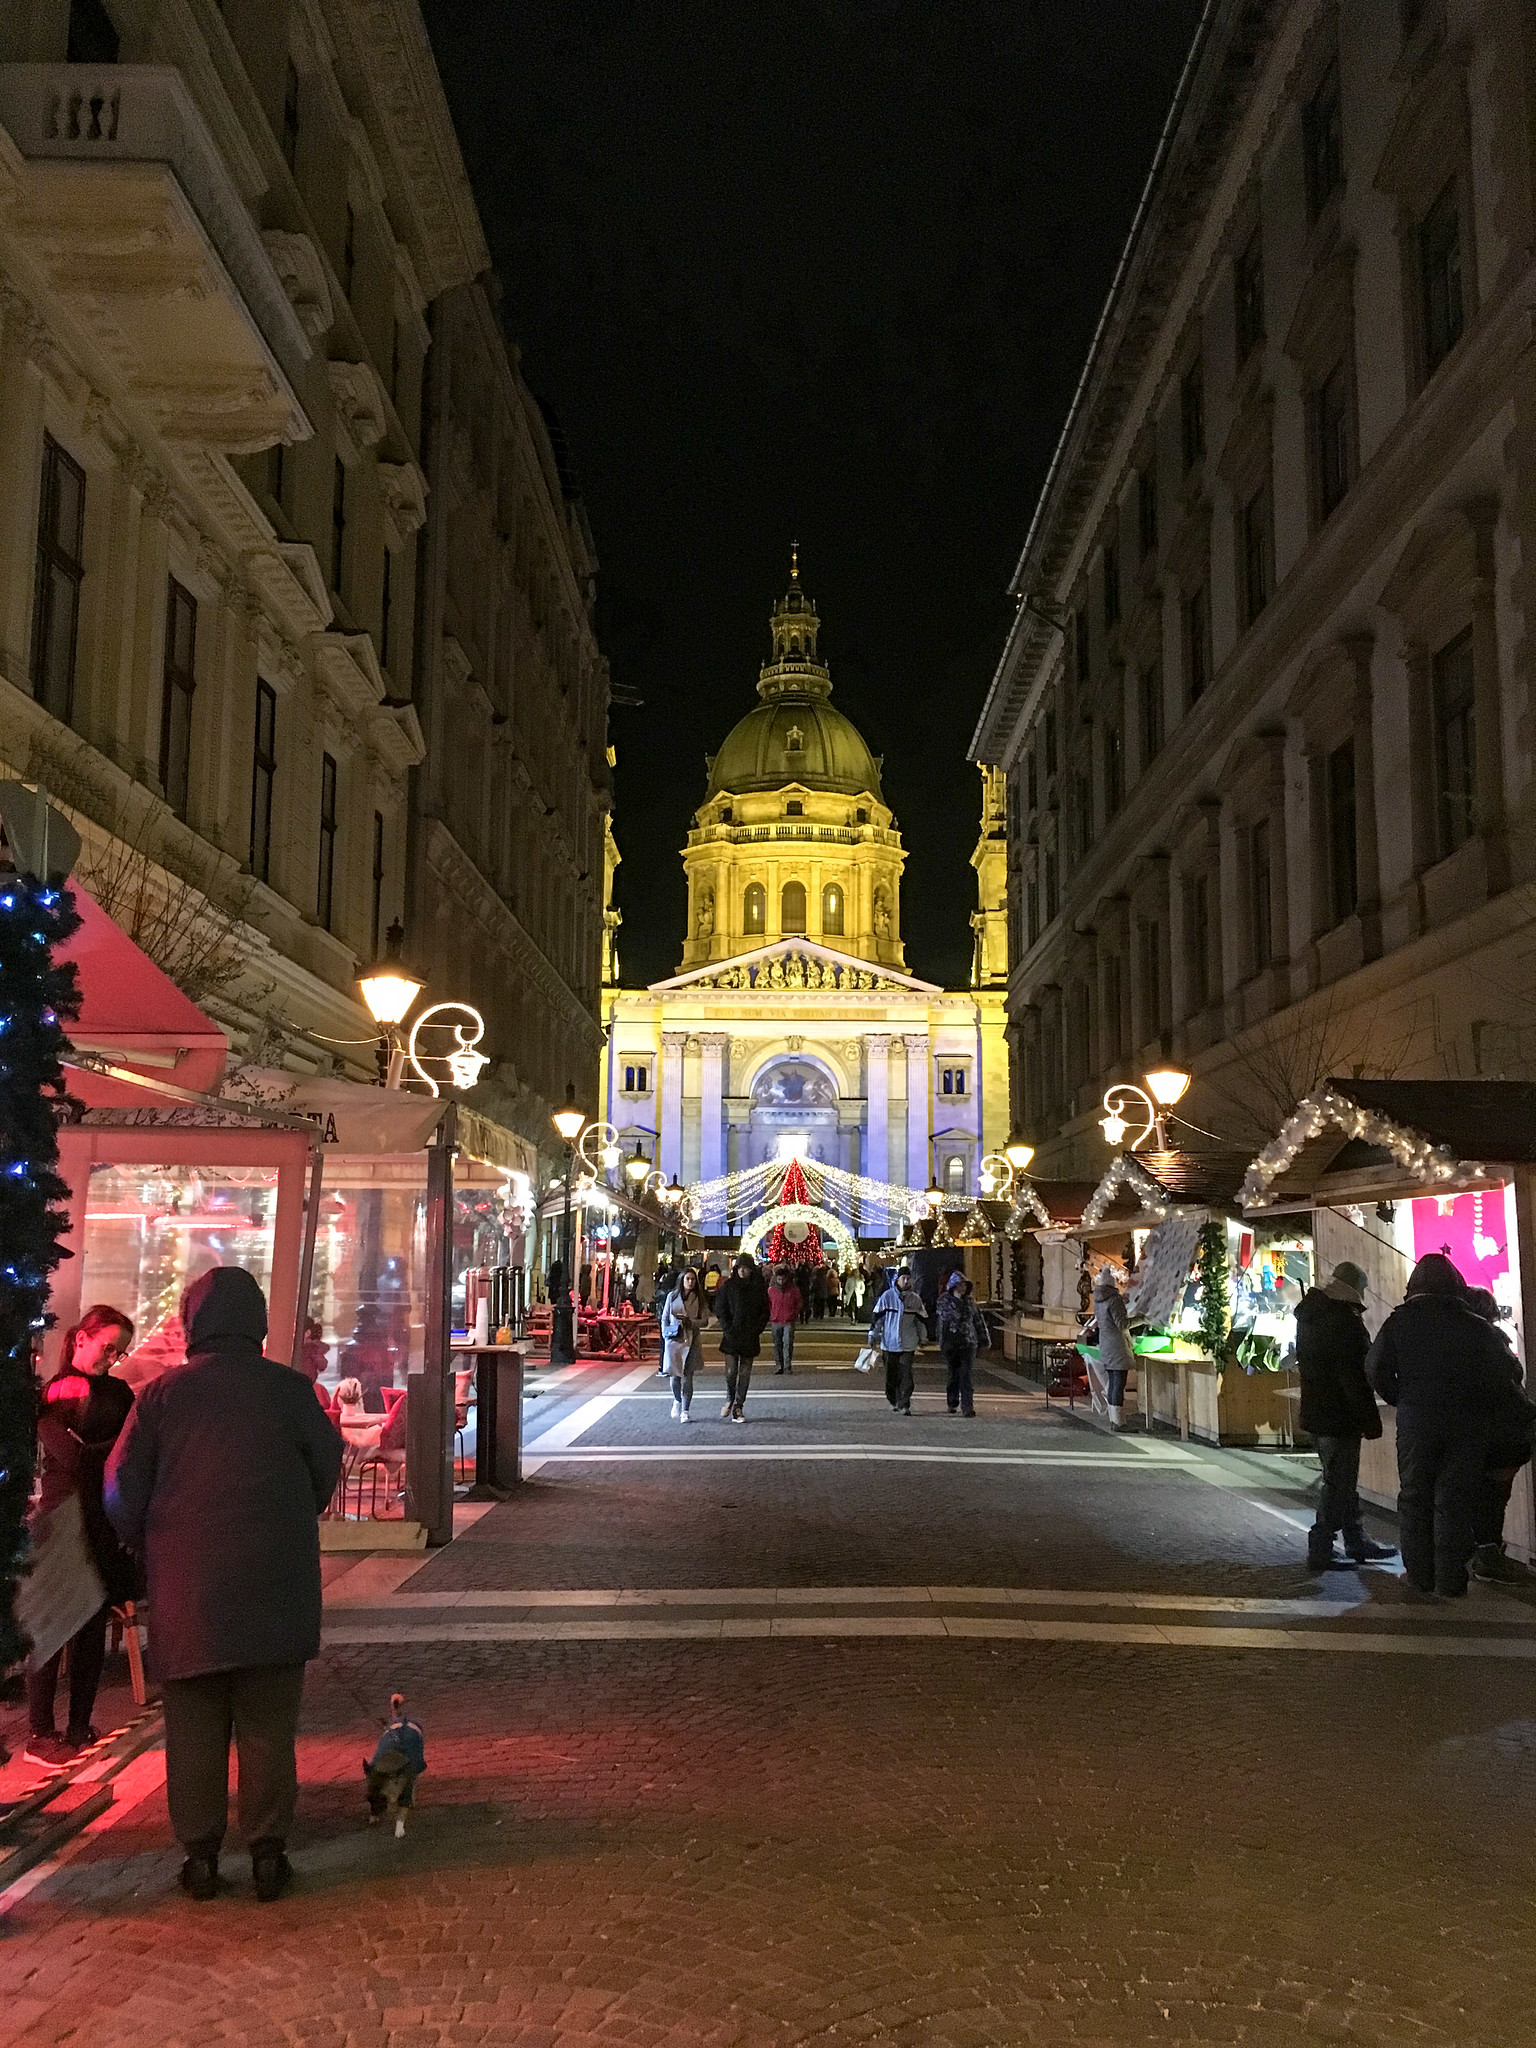 what to wear in budapest in january: be warm at night